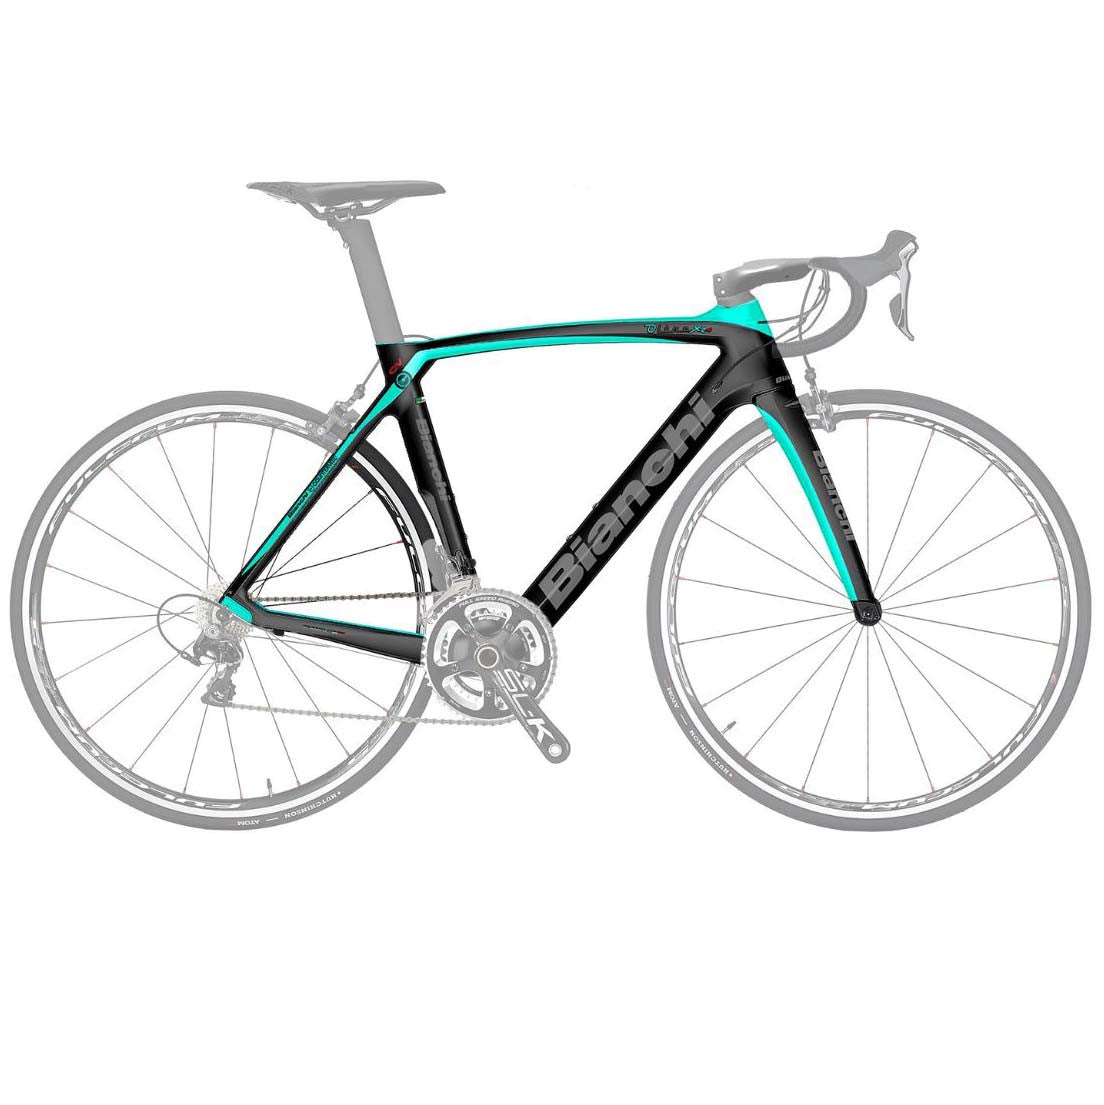 Bianchi Oltre XR4 Super Record EPS 11sp Compact 52/36